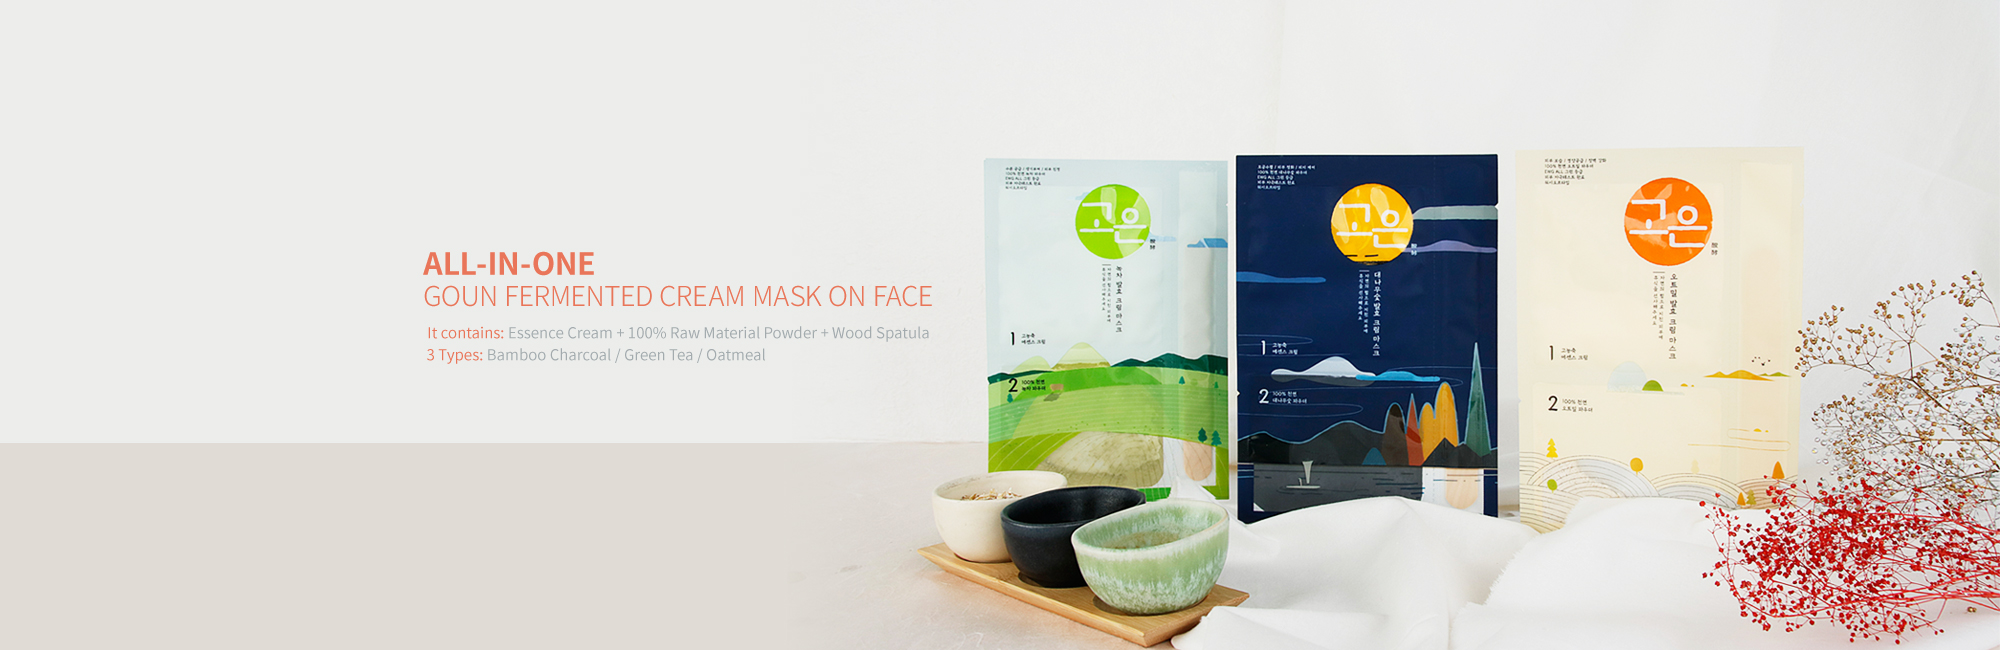 All-in-one Goun Fermented Cream Mask On Face